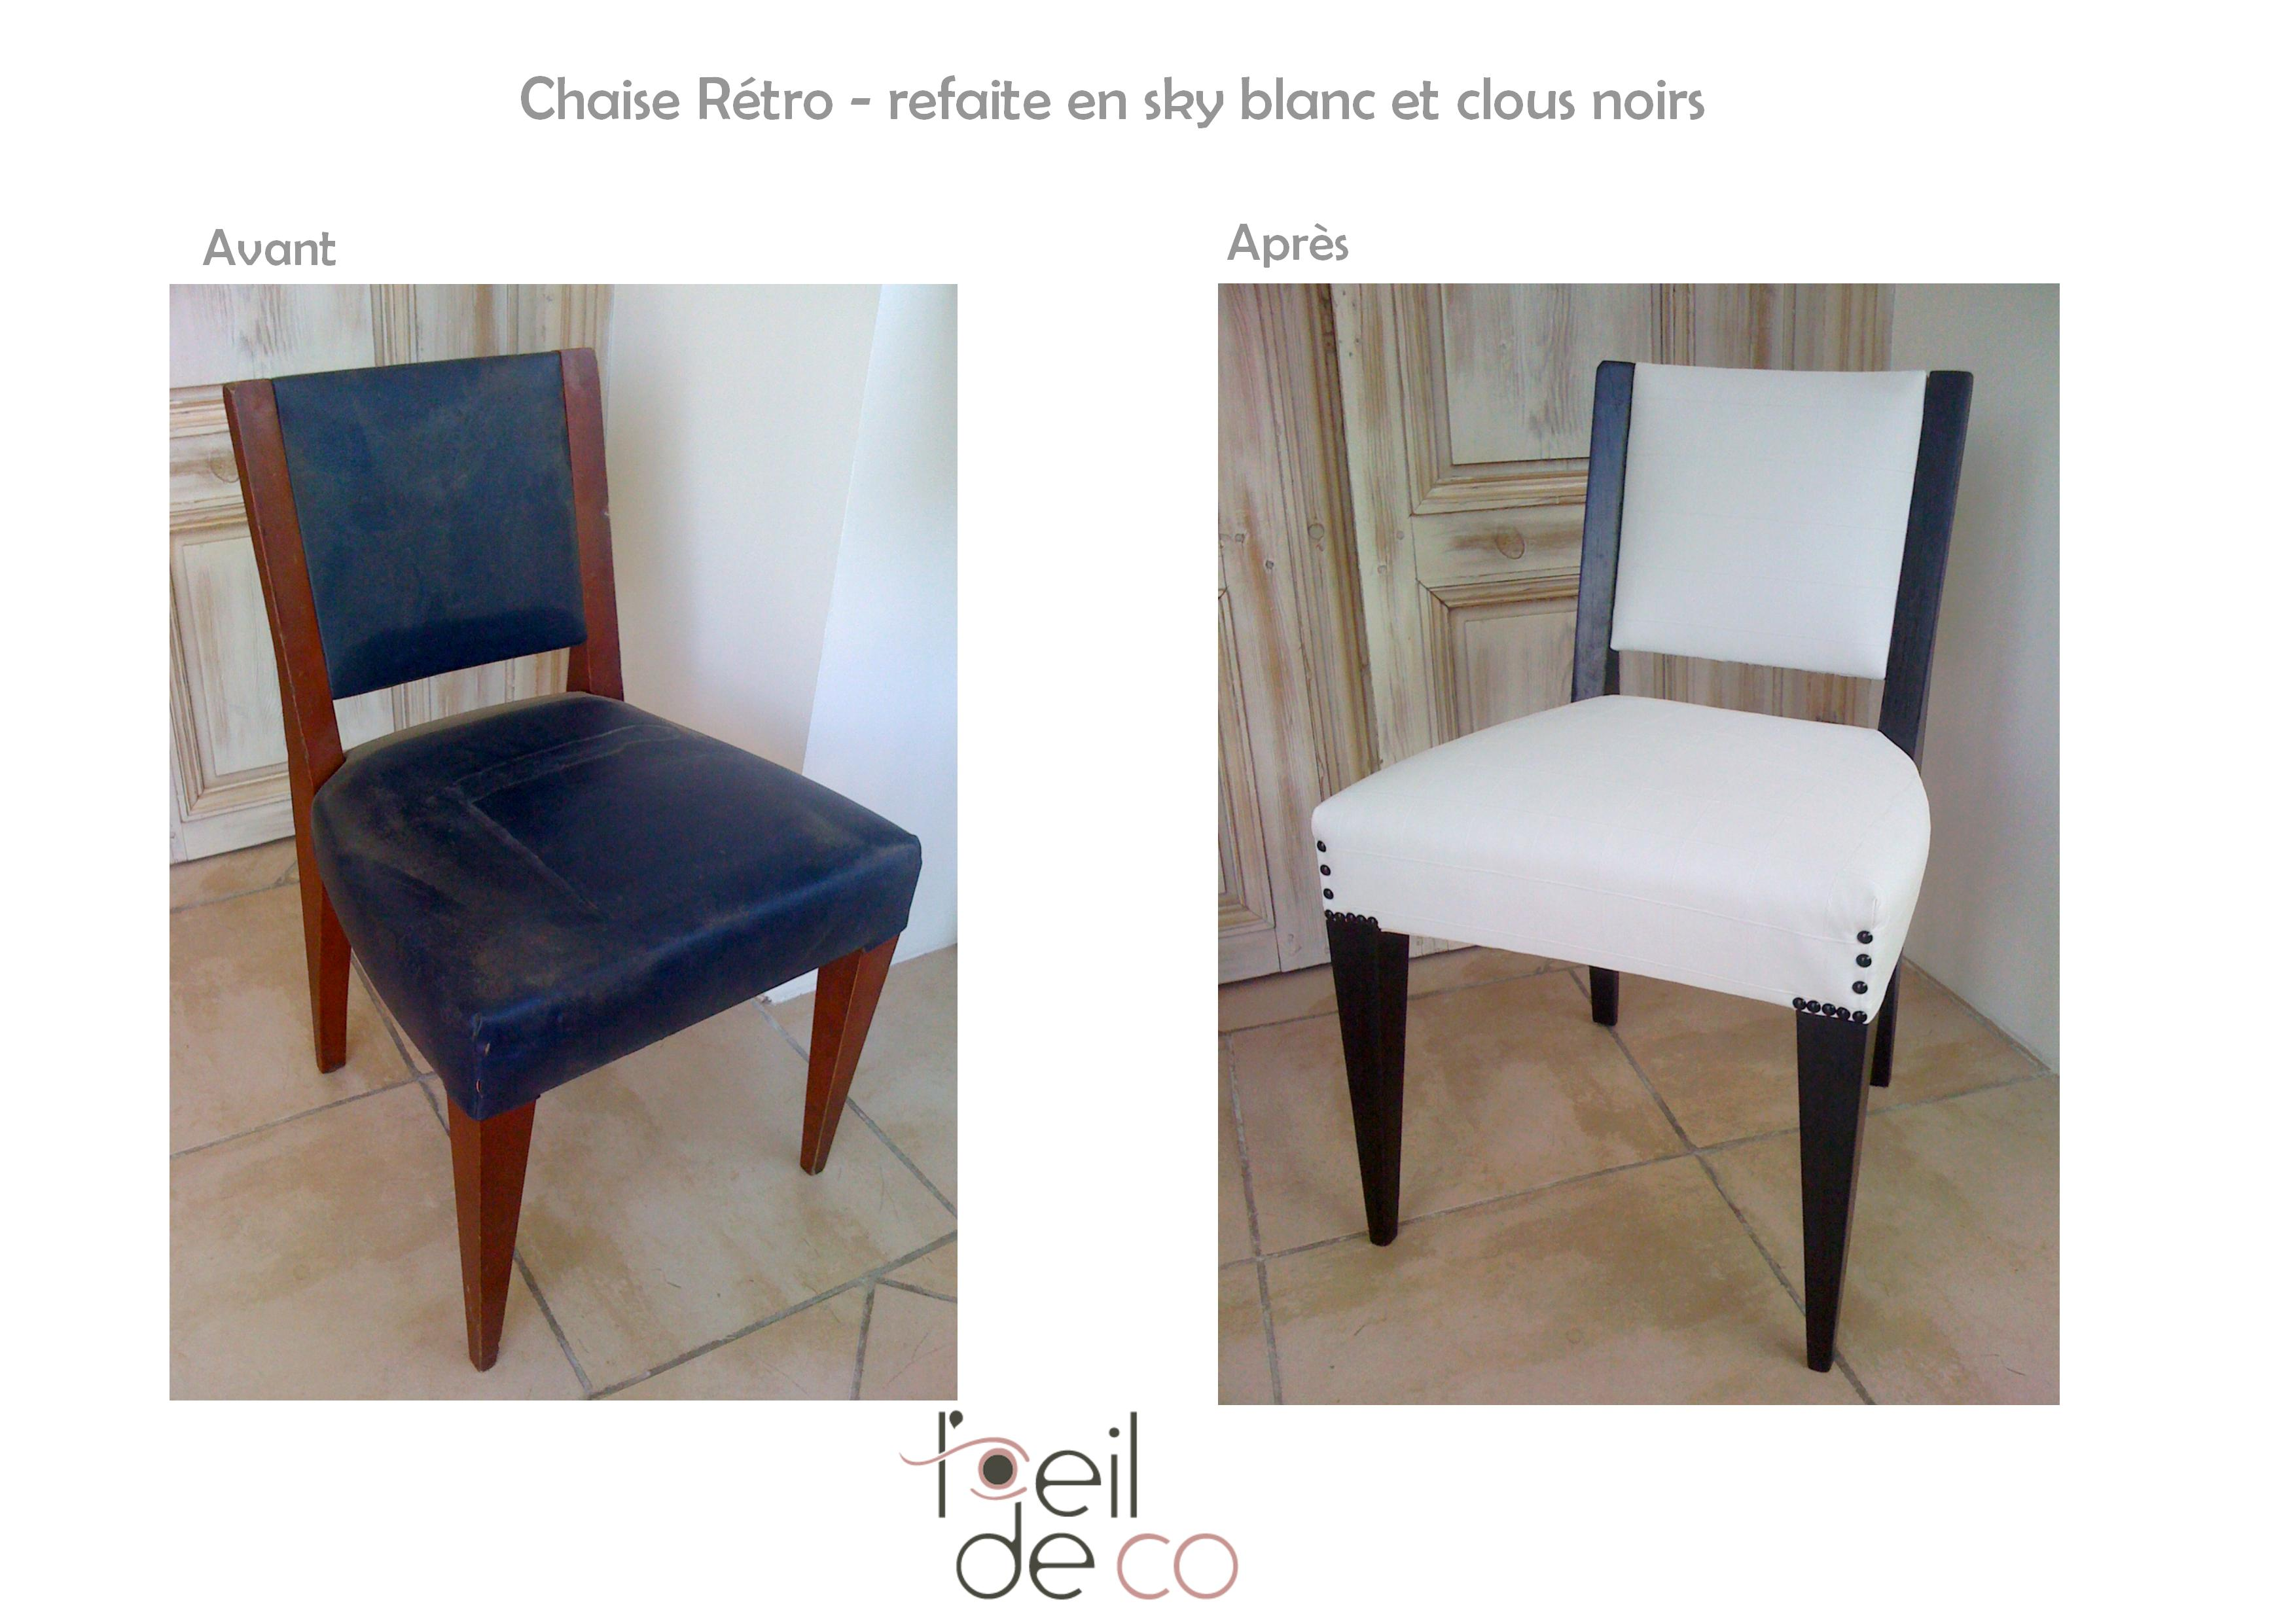 chaise_chaise_retro_n&b